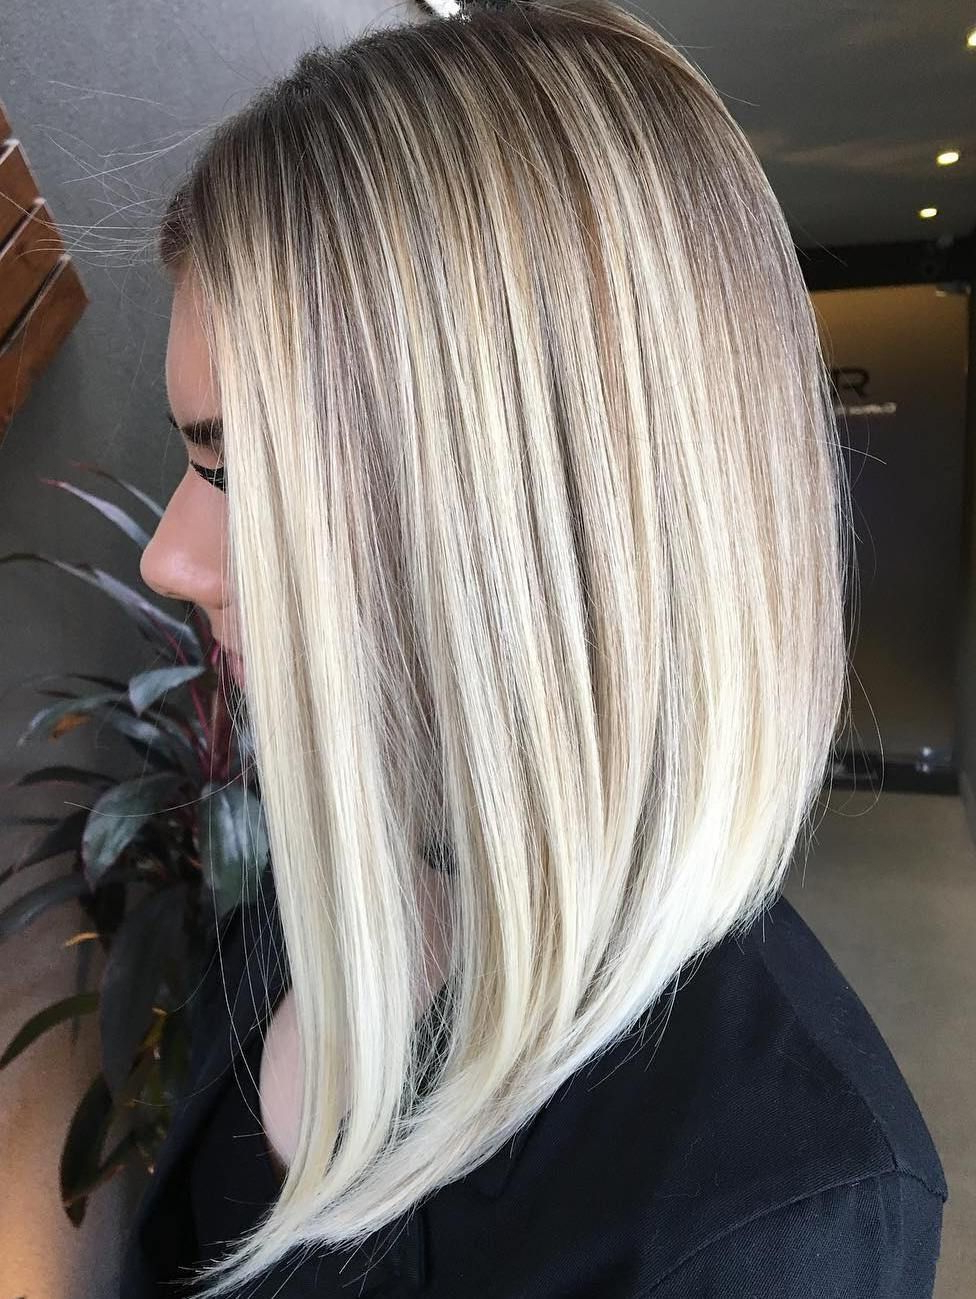 60 Fun And Flattering Medium Hairstyles For Women In 2018 | Sexy Within Blonde Balayage Bob Hairstyles With Angled Layers (View 7 of 20)